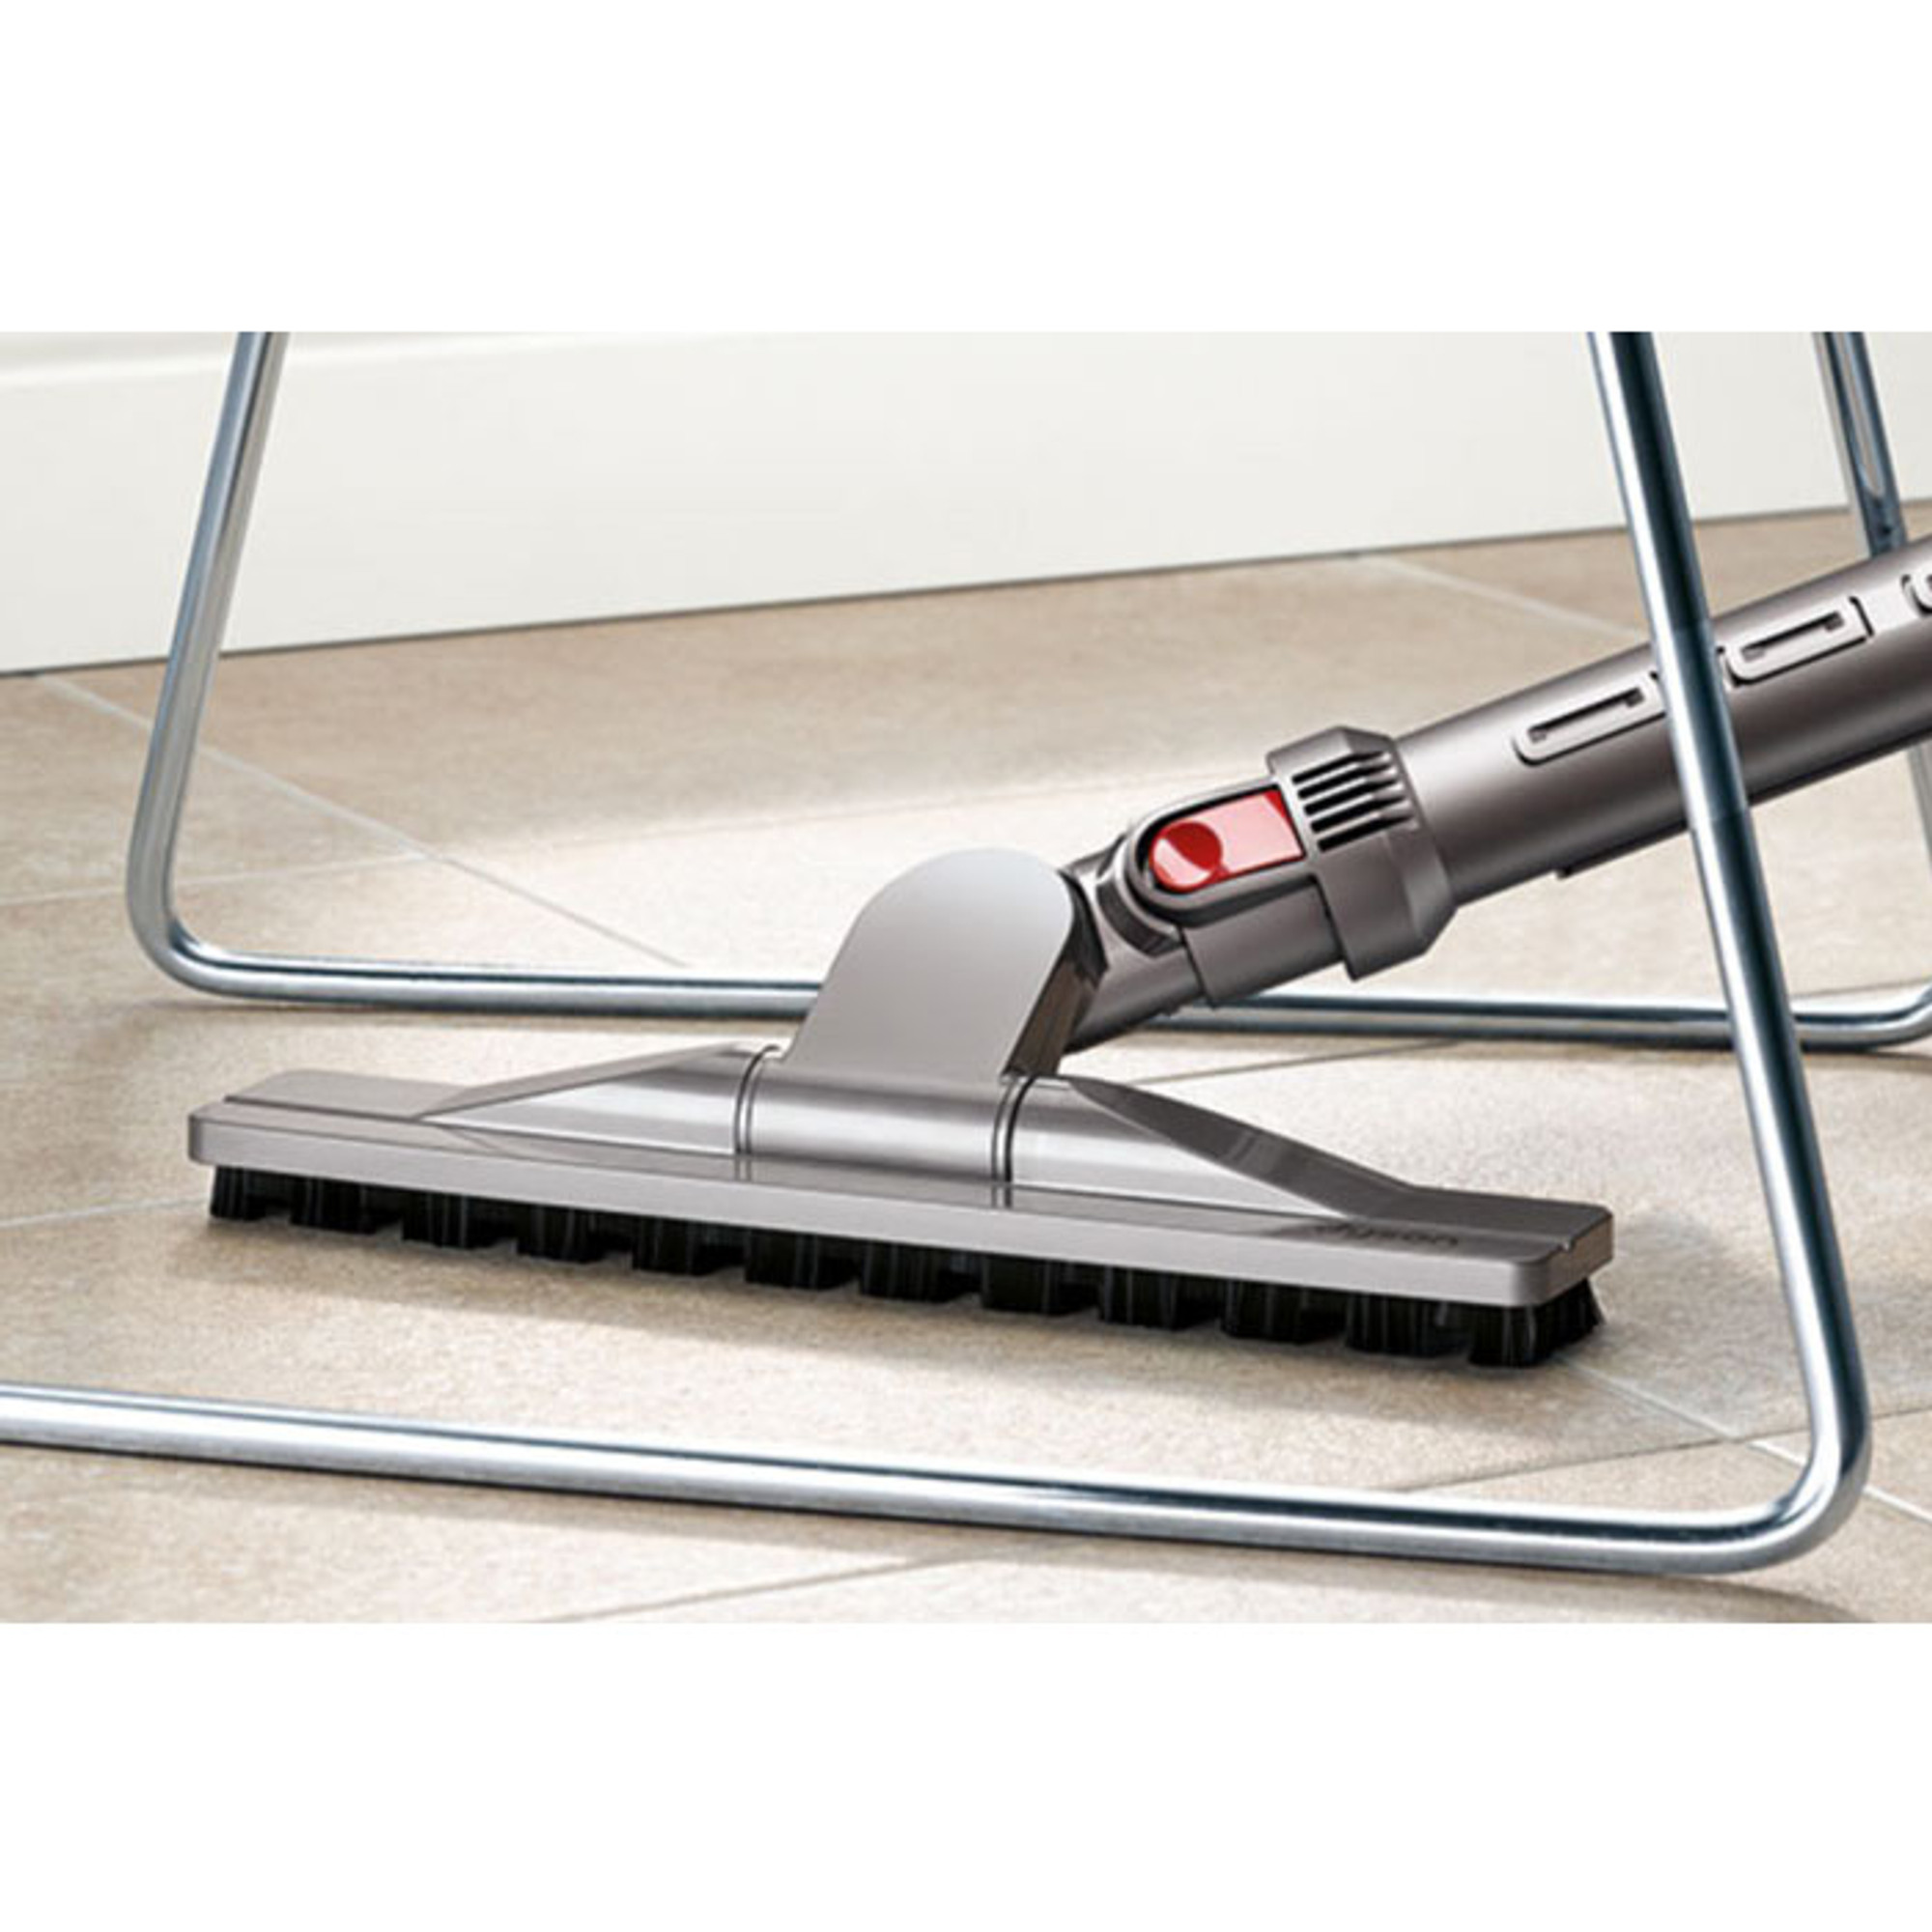 Buy Dyson Articulating Hard Floor Tool from Canada at